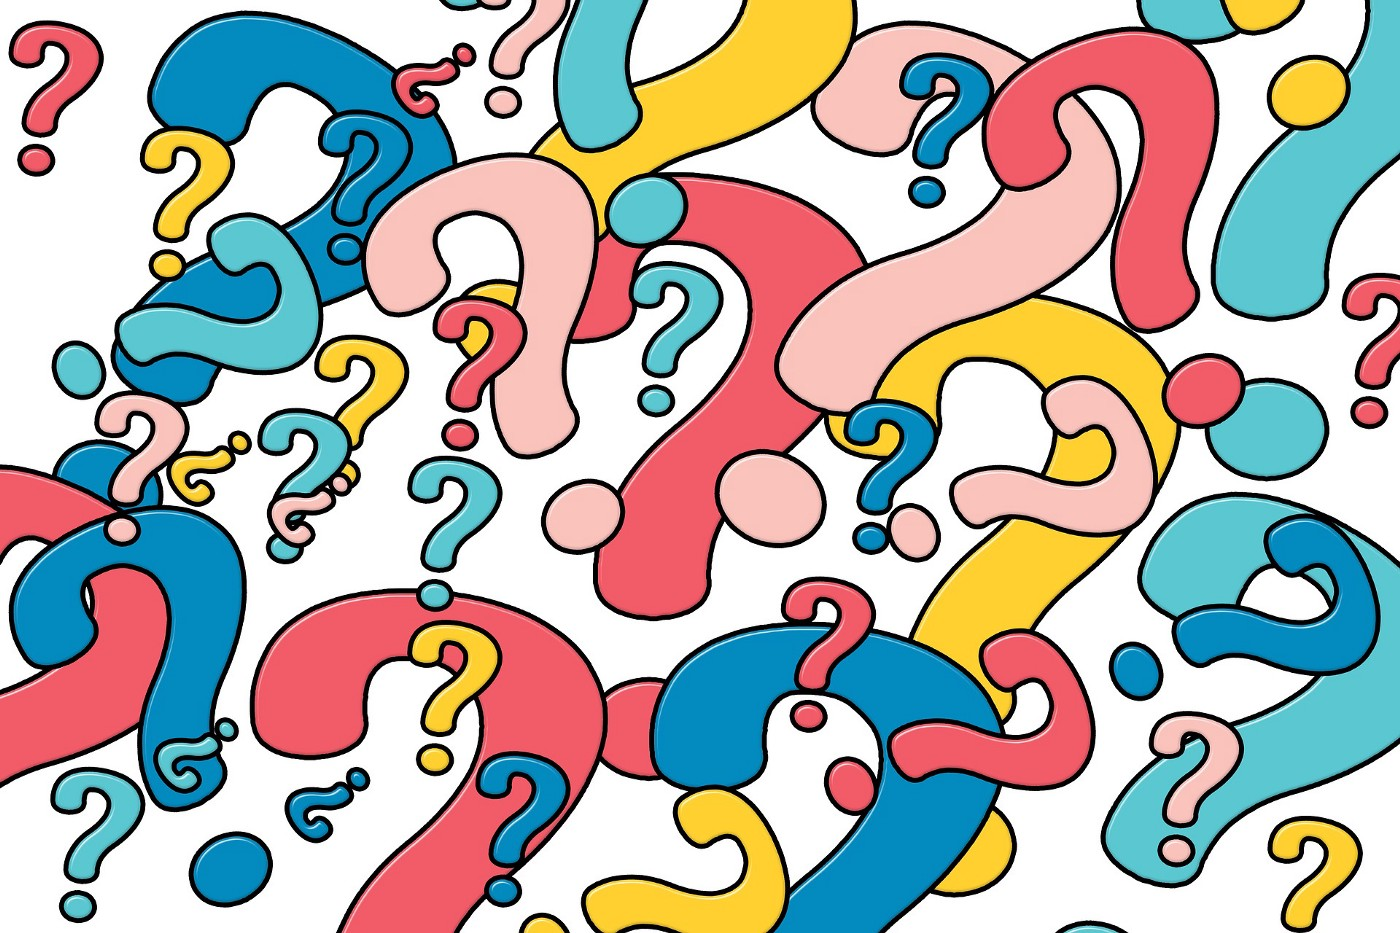 A screen full of differently colored question marks in dark blue, light blue, dark pink, light pink, and yellow.